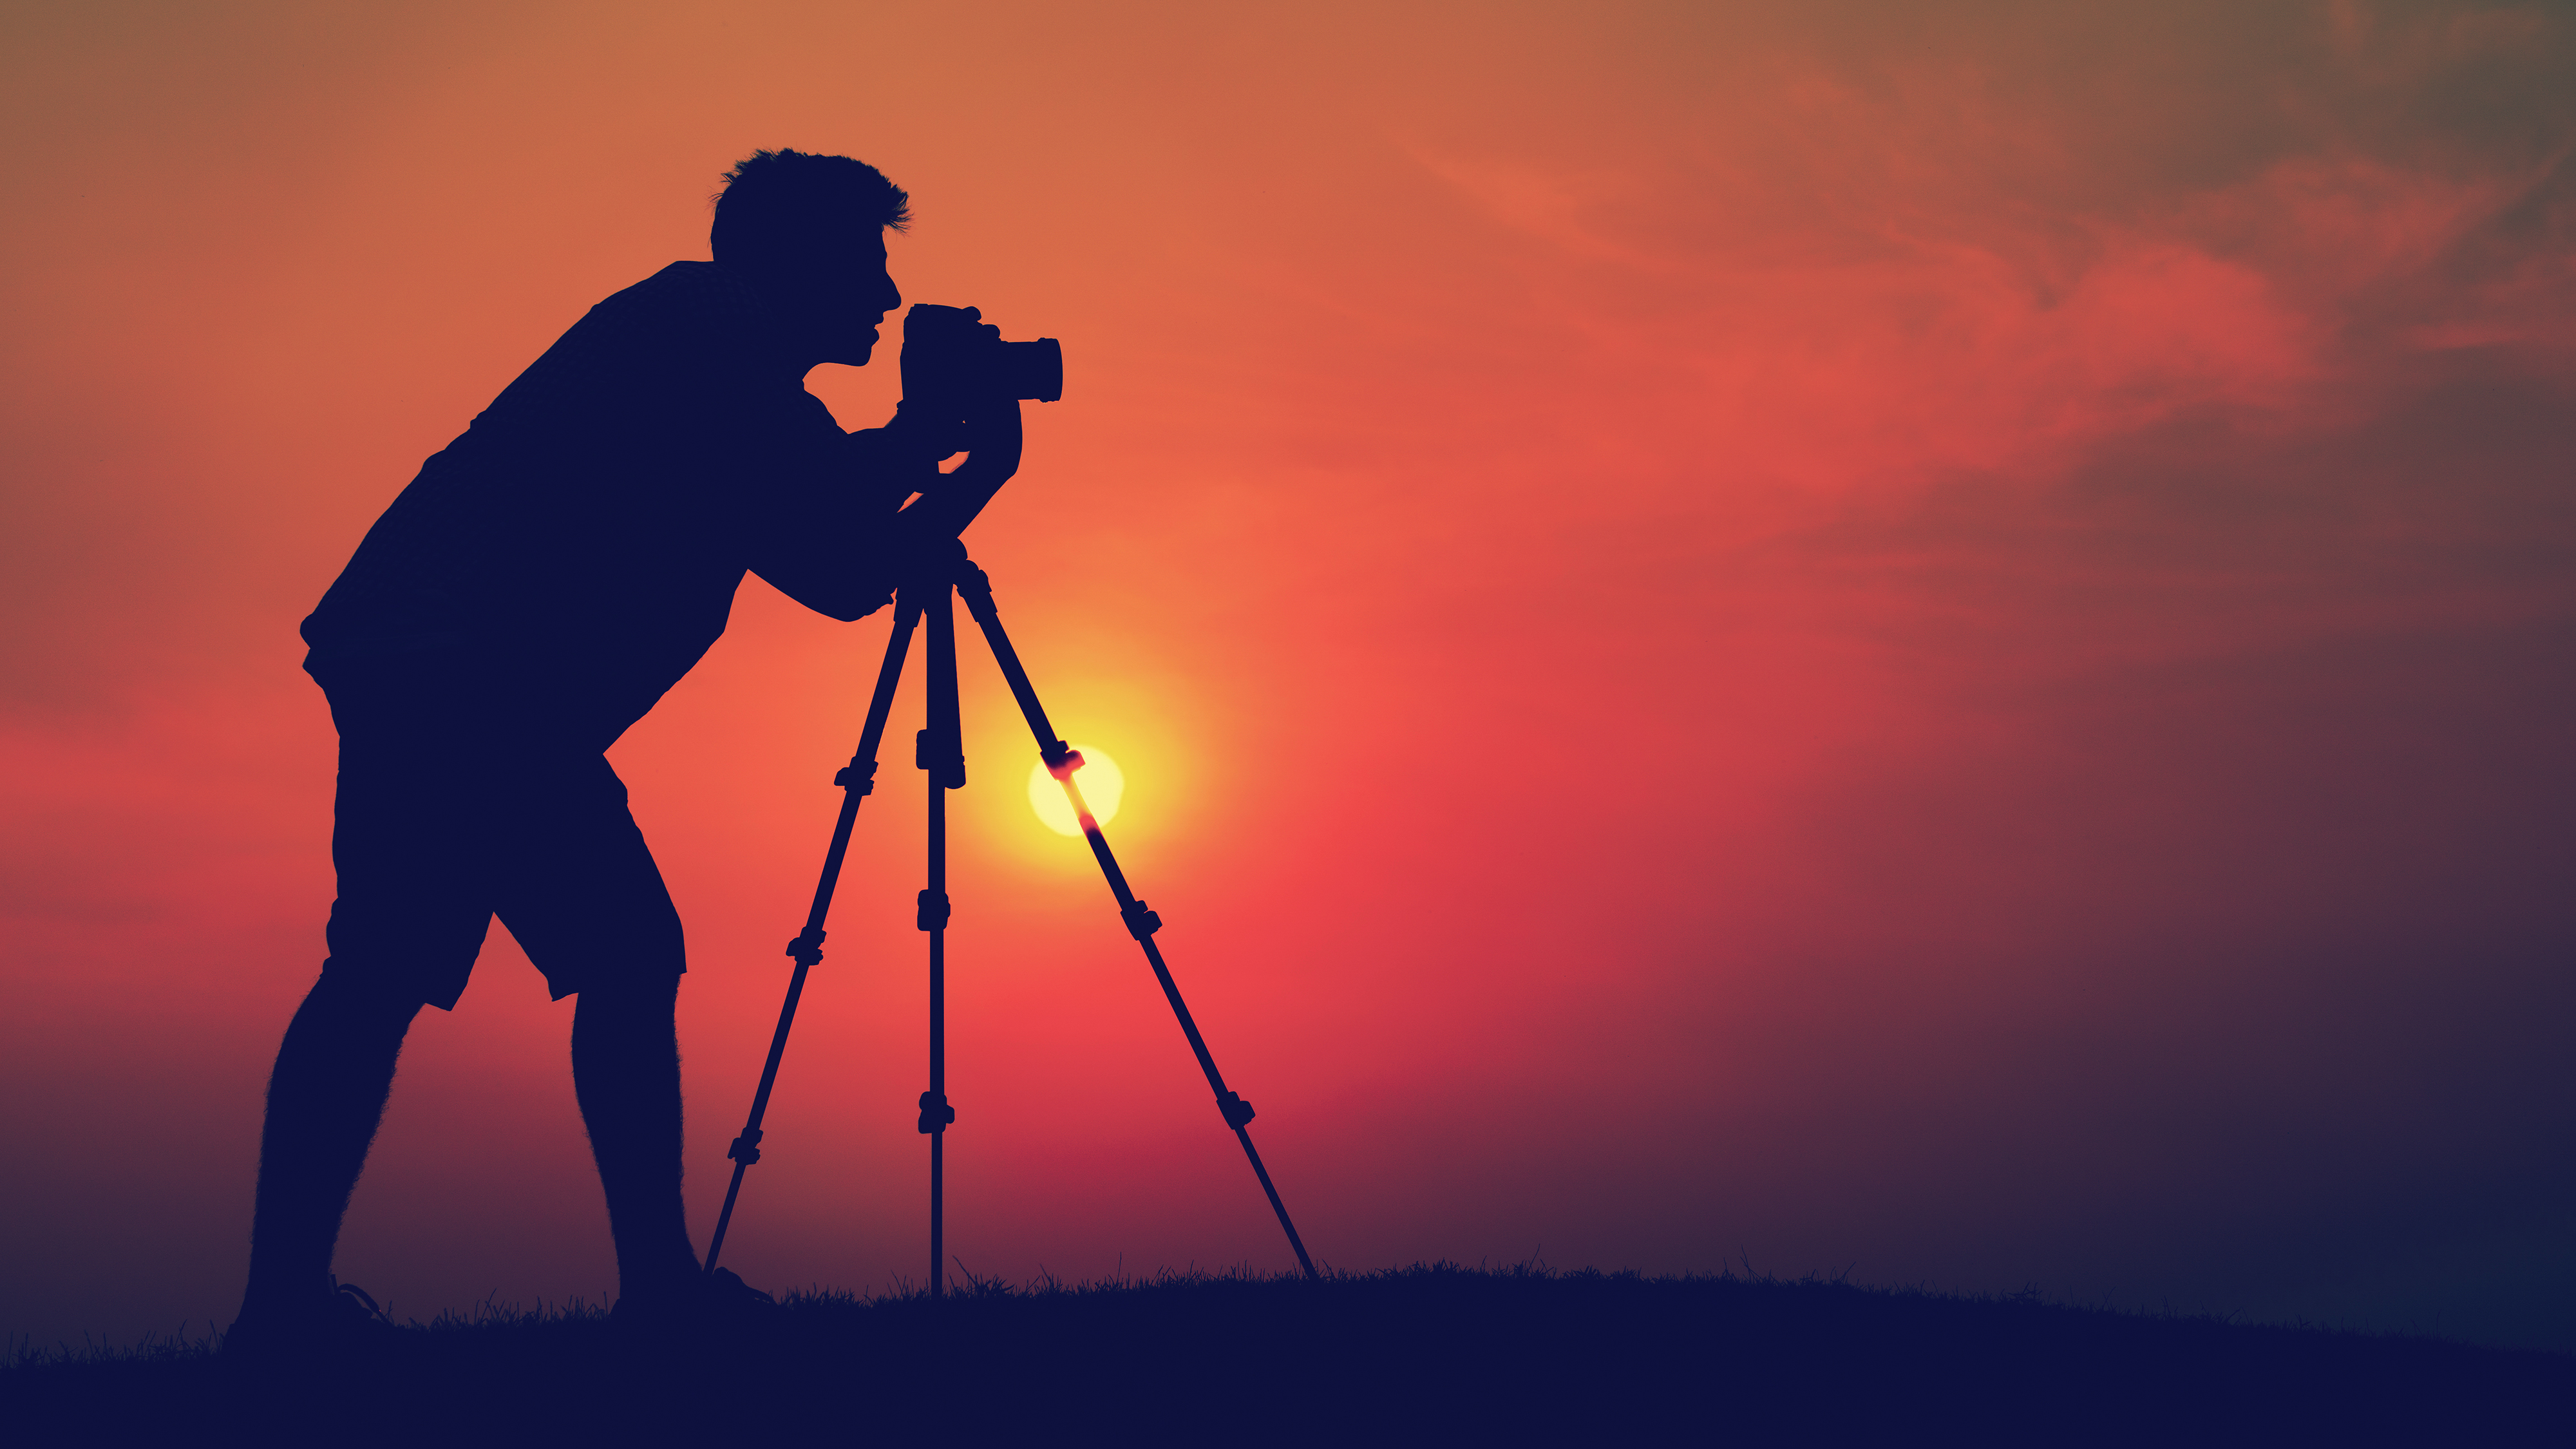 New To Photography? Here Are 10 Terms That Every Photographer Must Know